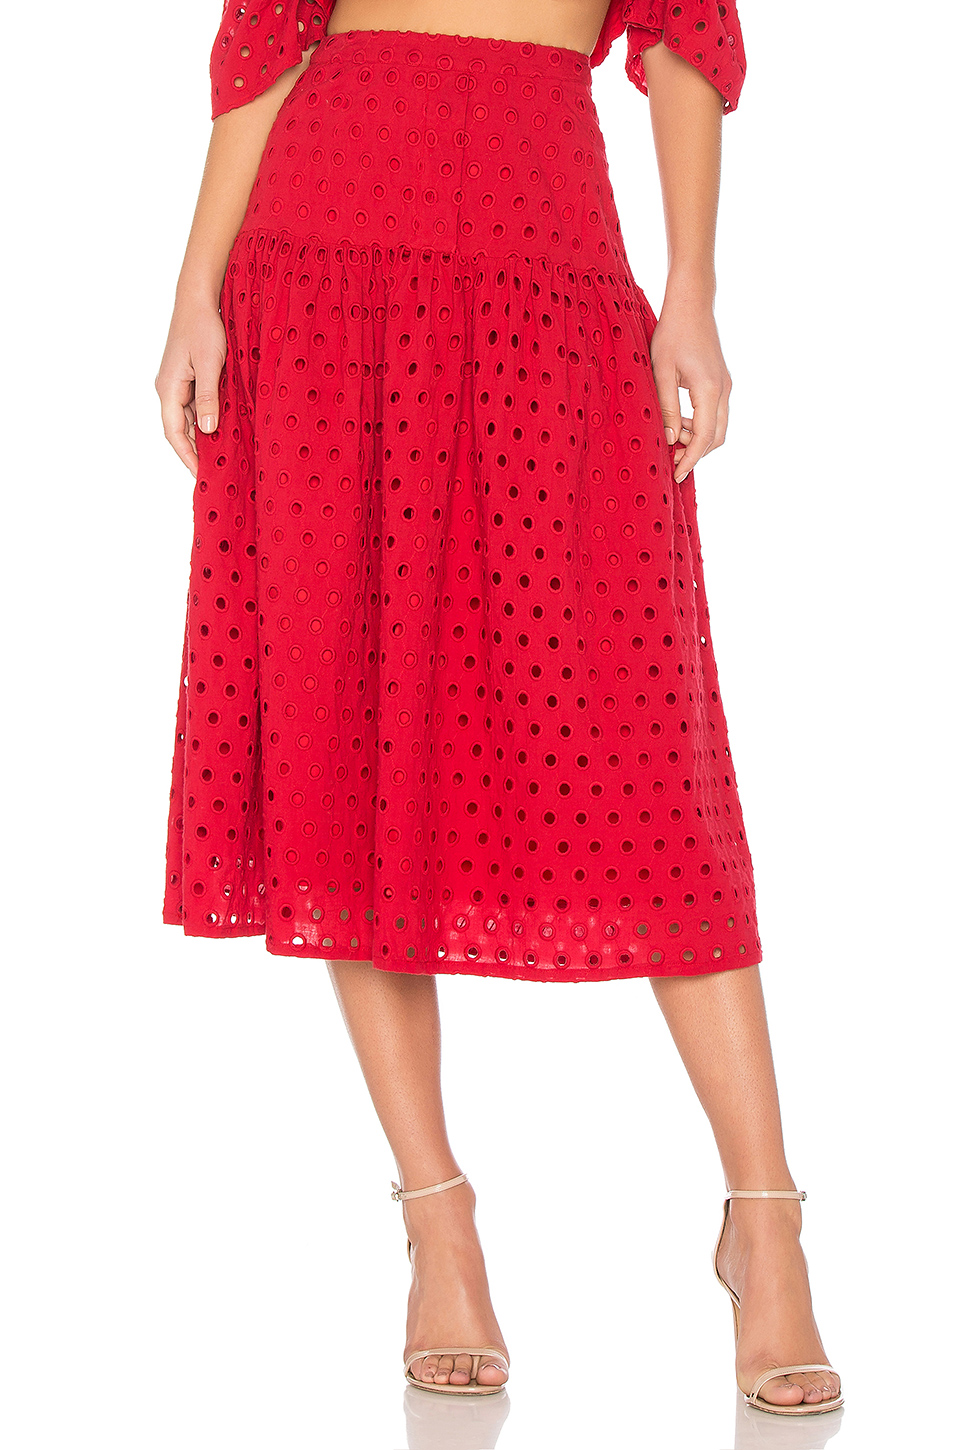 Paper London Plage Fiesta Skirt in Red